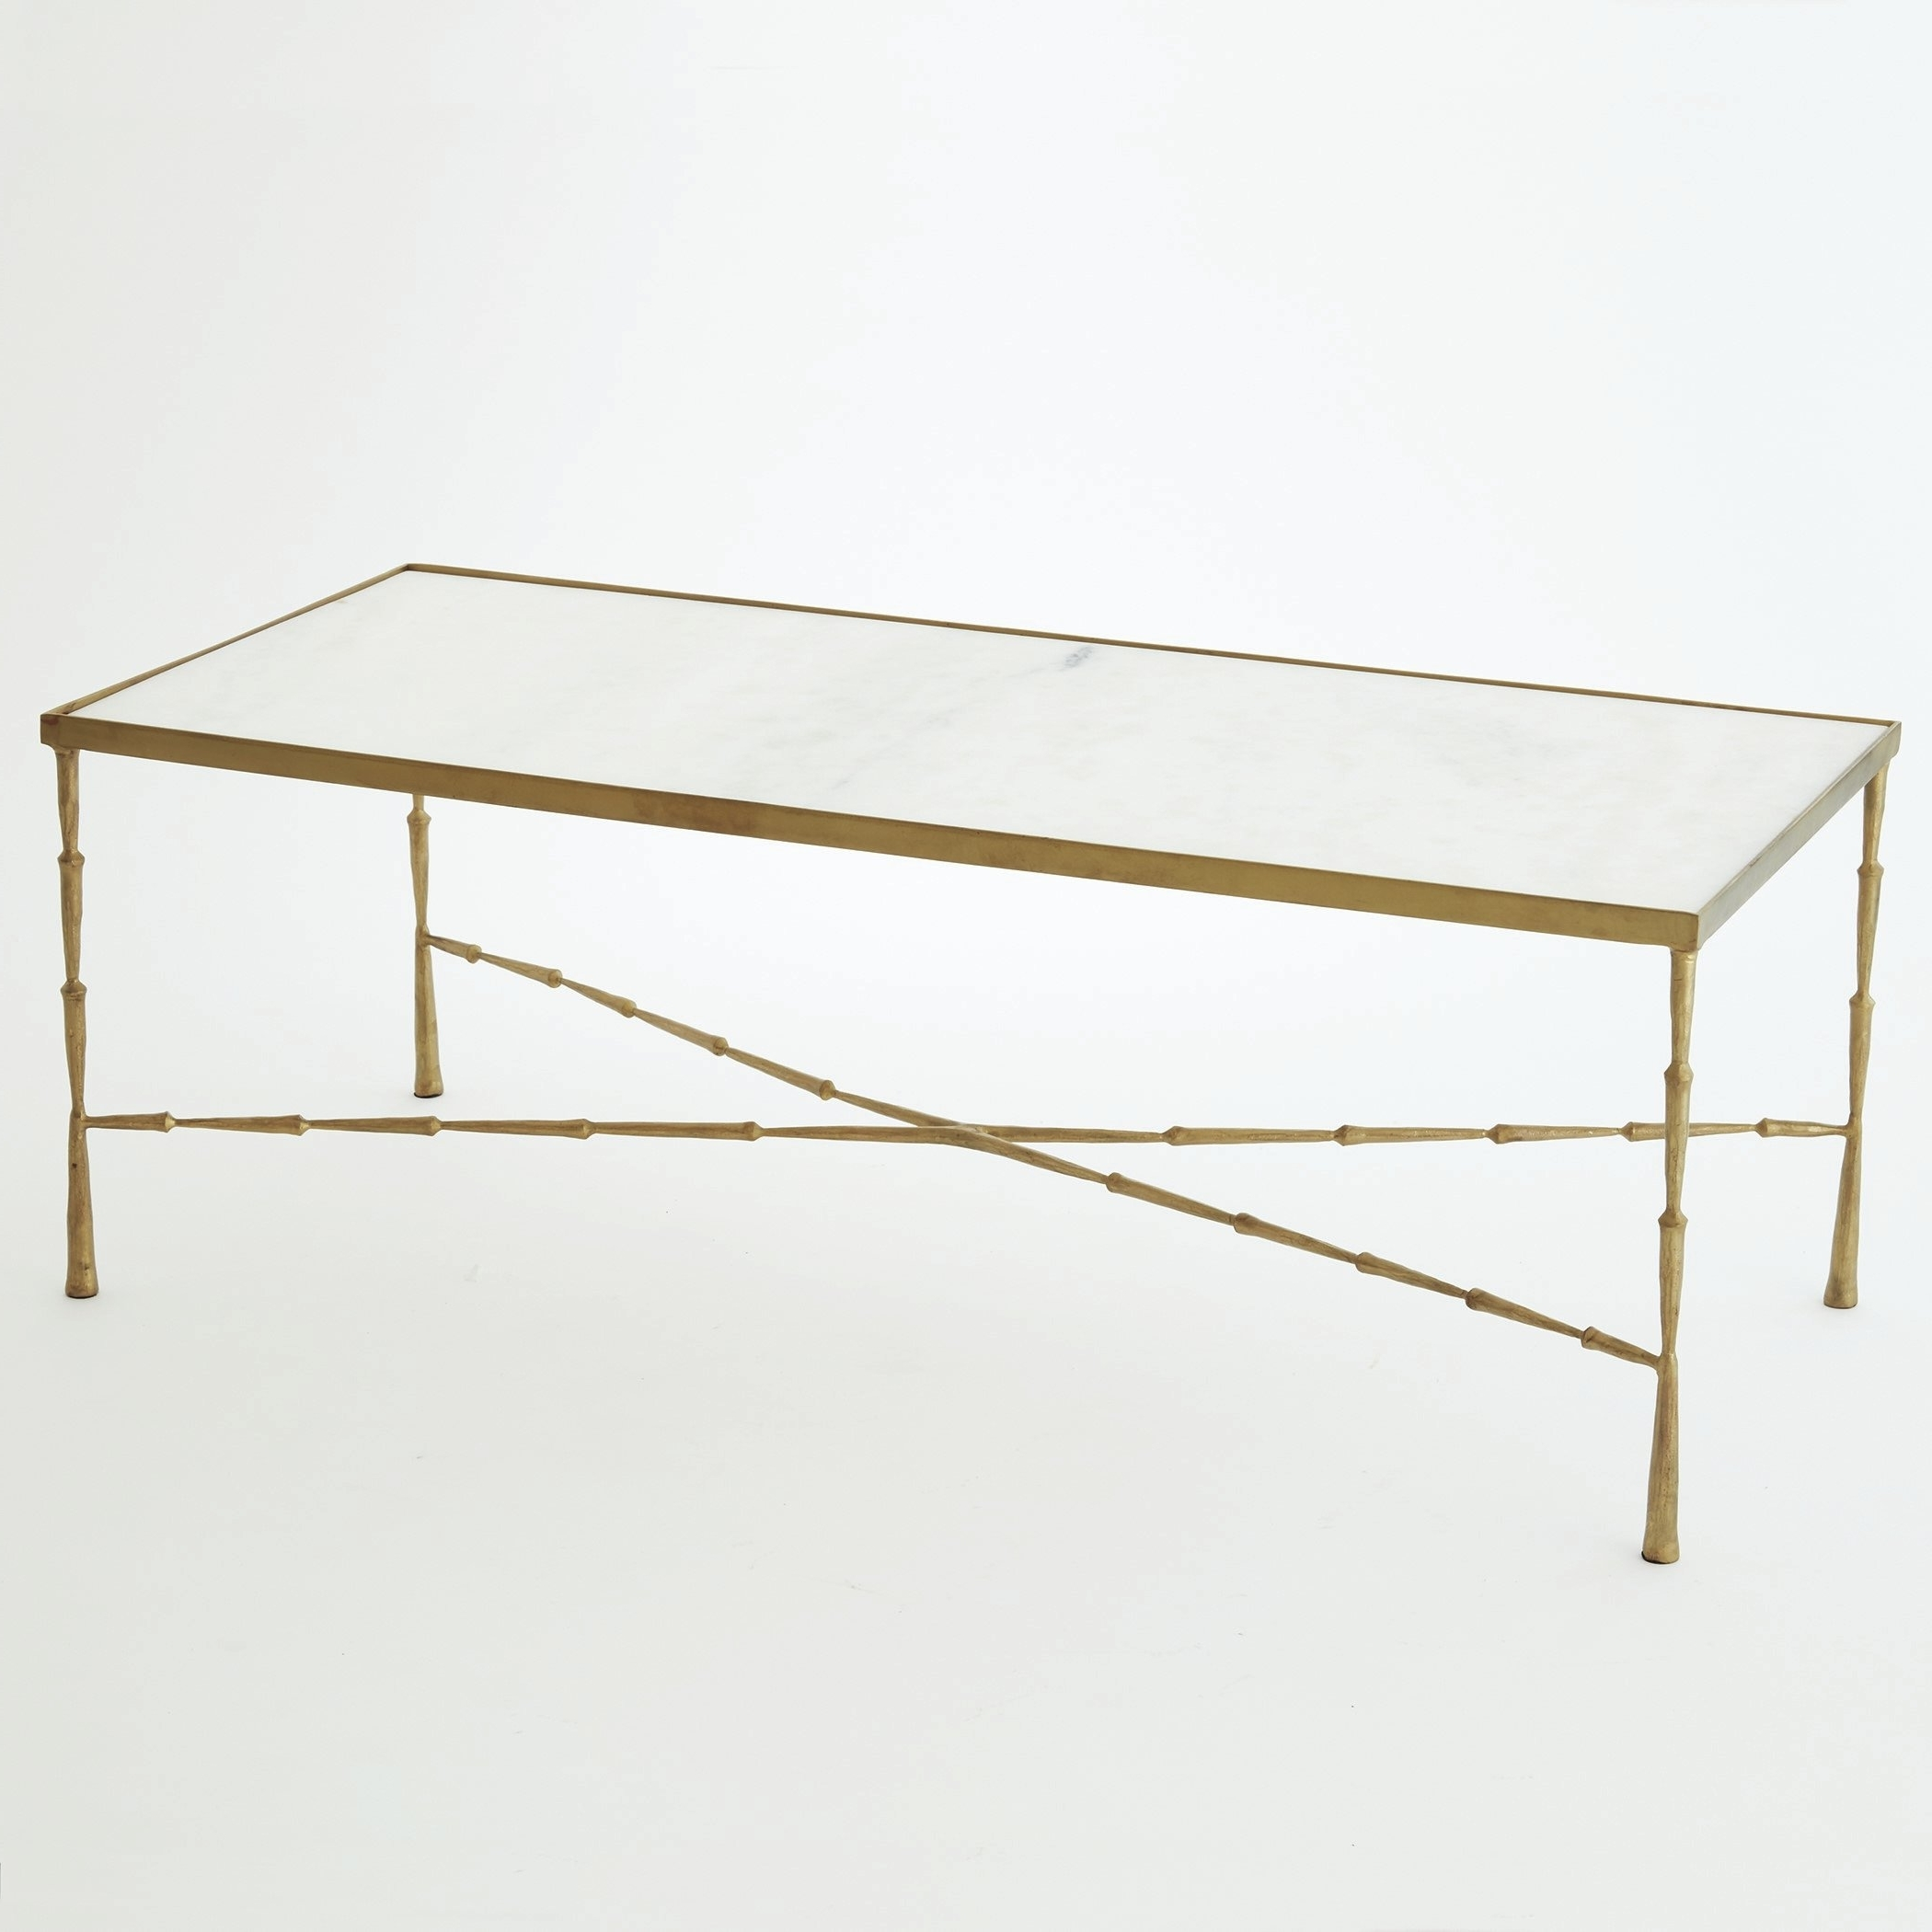 Wayfair Intended For Most Up To Date Iron Marble Coffee Tables (View 19 of 20)